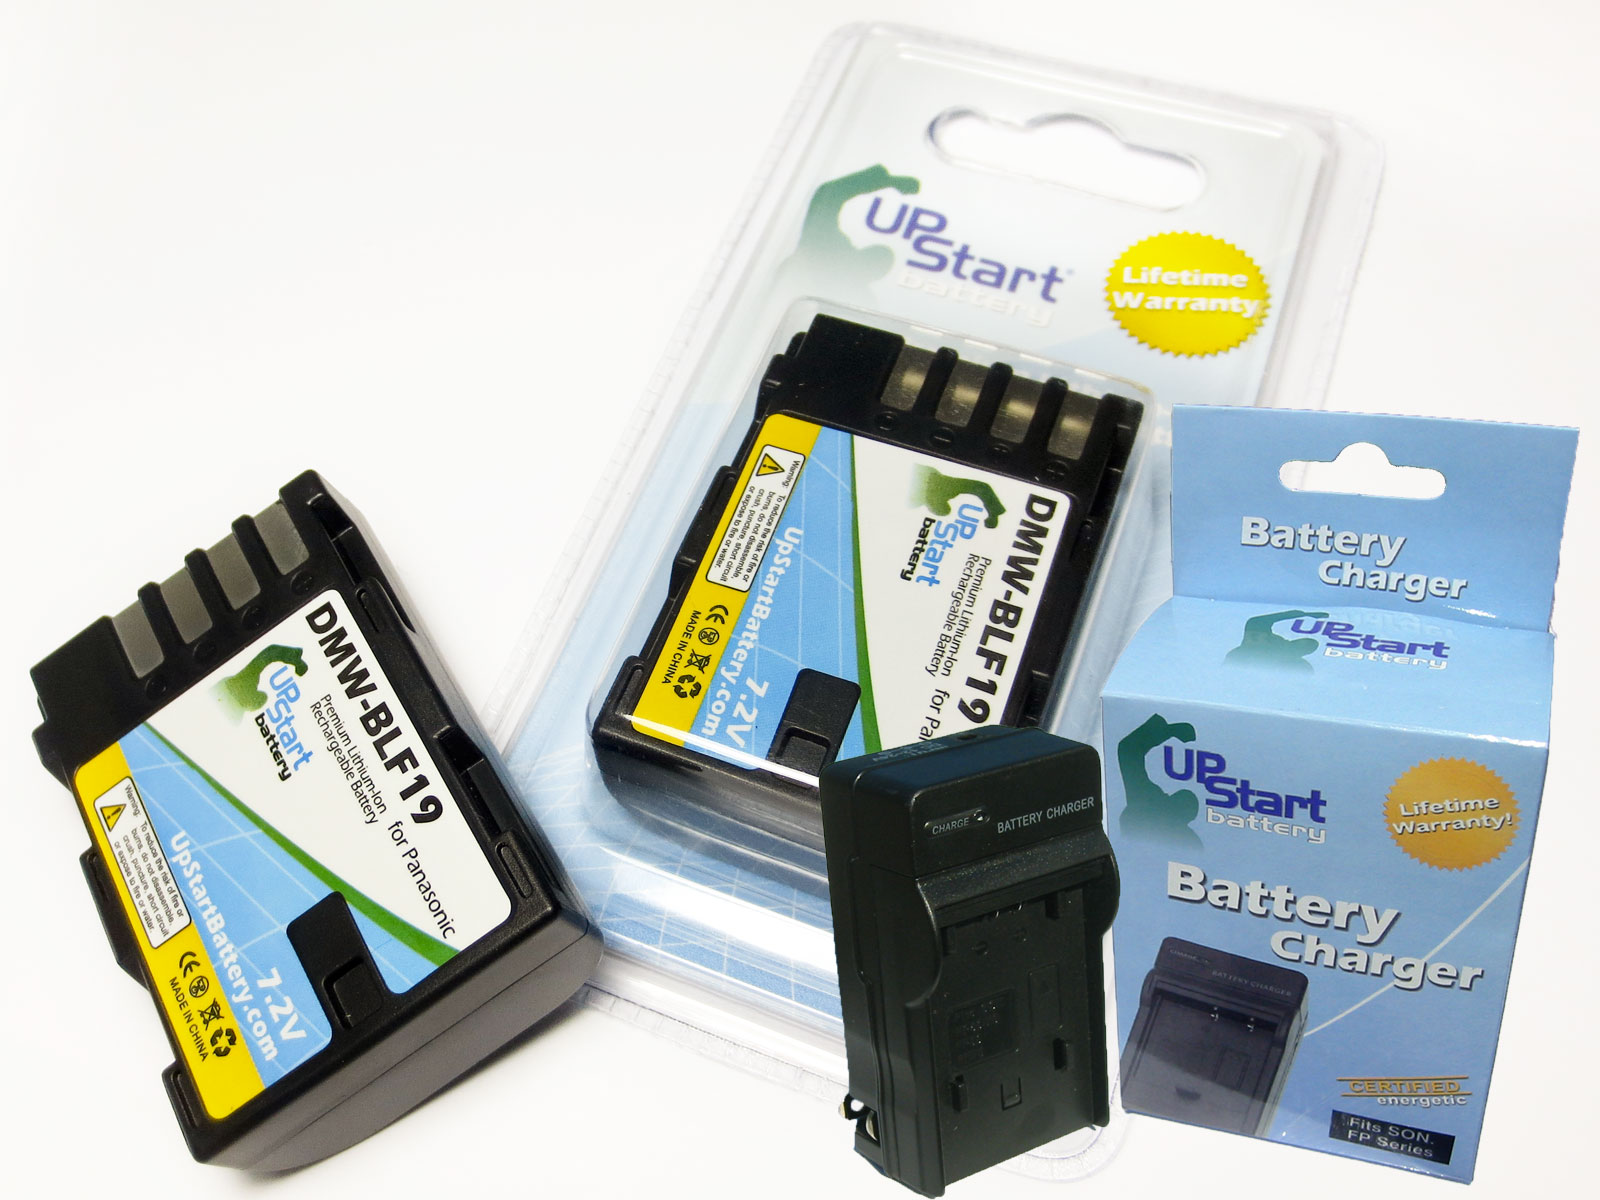 UpStart Battery 2x Pack - DMW-BLF19 Replacement Battery and Charger for Panasonic Lumix DMC-GH3, DMW-BLF19E, Lumix DMC-GH3A Camera at Sears.com